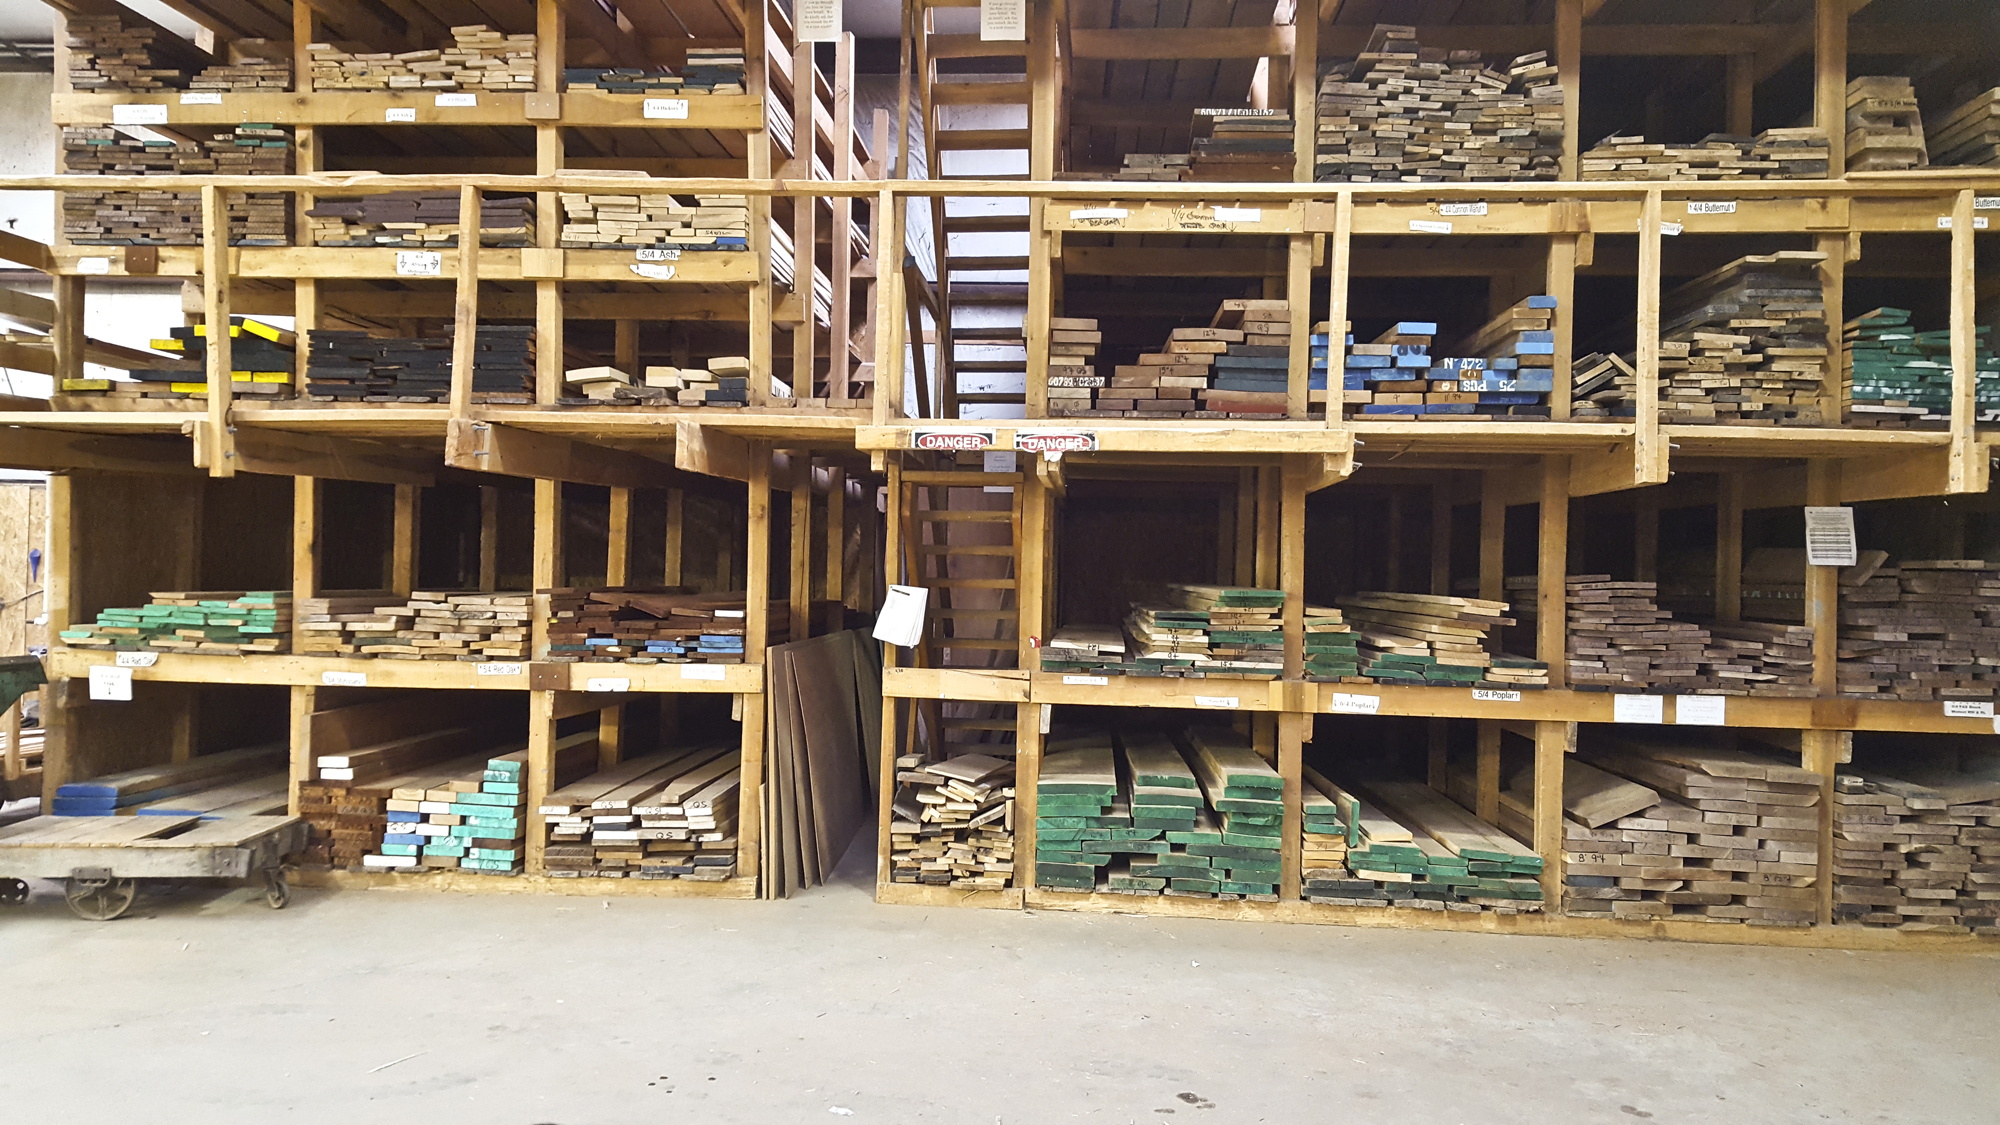 Buy figured wood, exotic lumber, book-matched boards, table top slabs, burls. rough sawn lumber, guitar sets and more at Hearne Hardwood Inc.